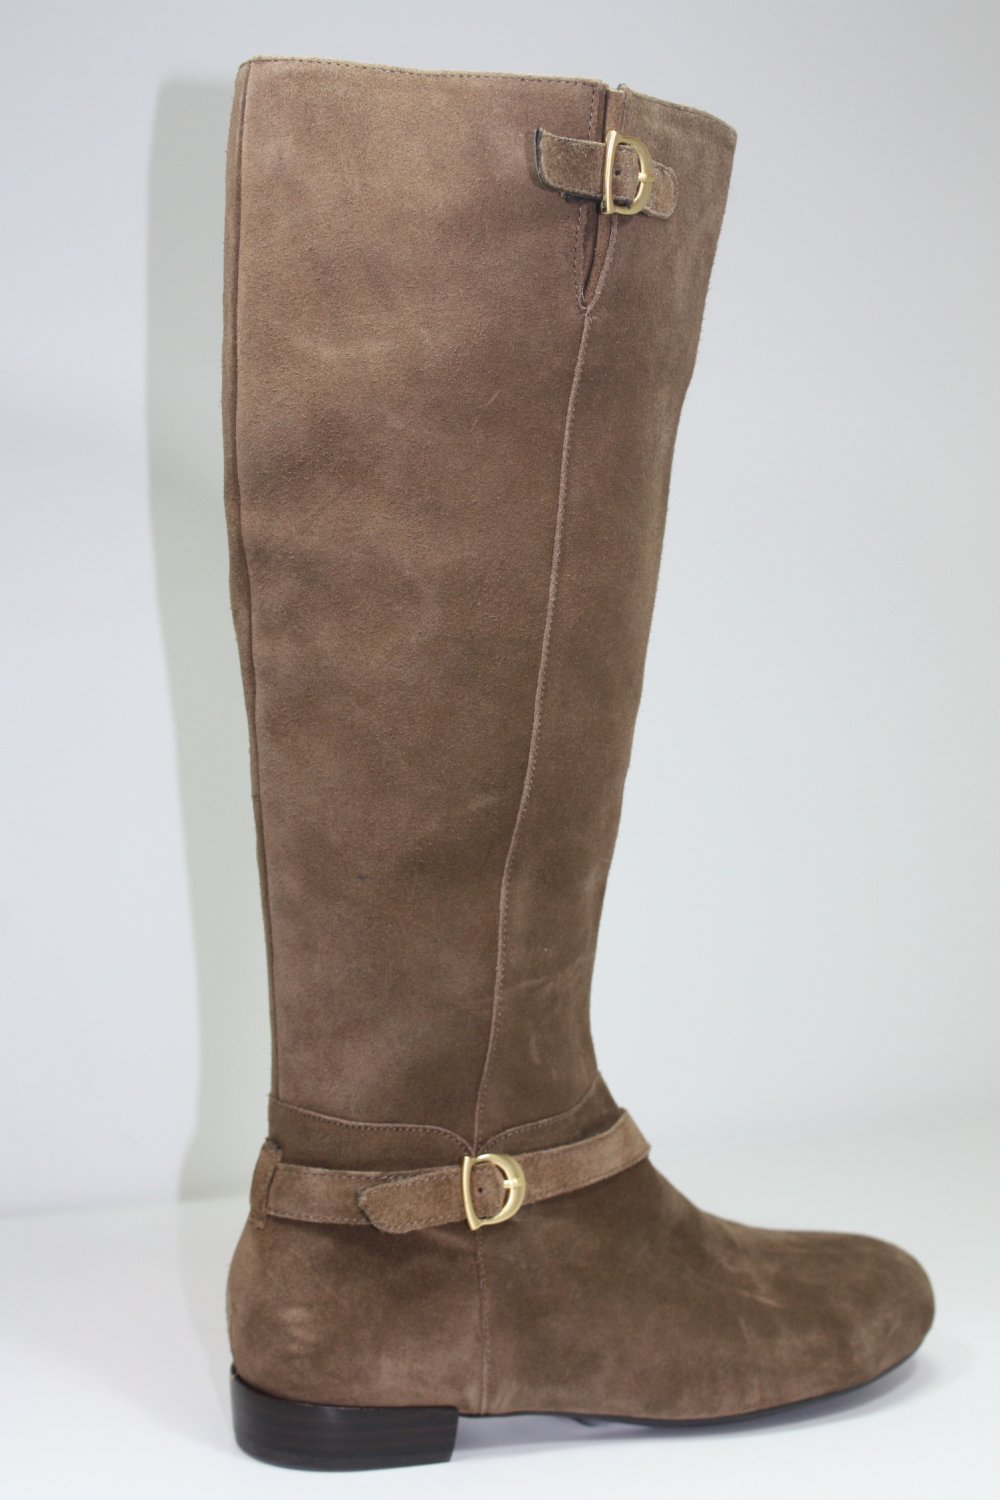 Circa Joan & David HEARTY Boots Suede Shoes US 7.5 $199